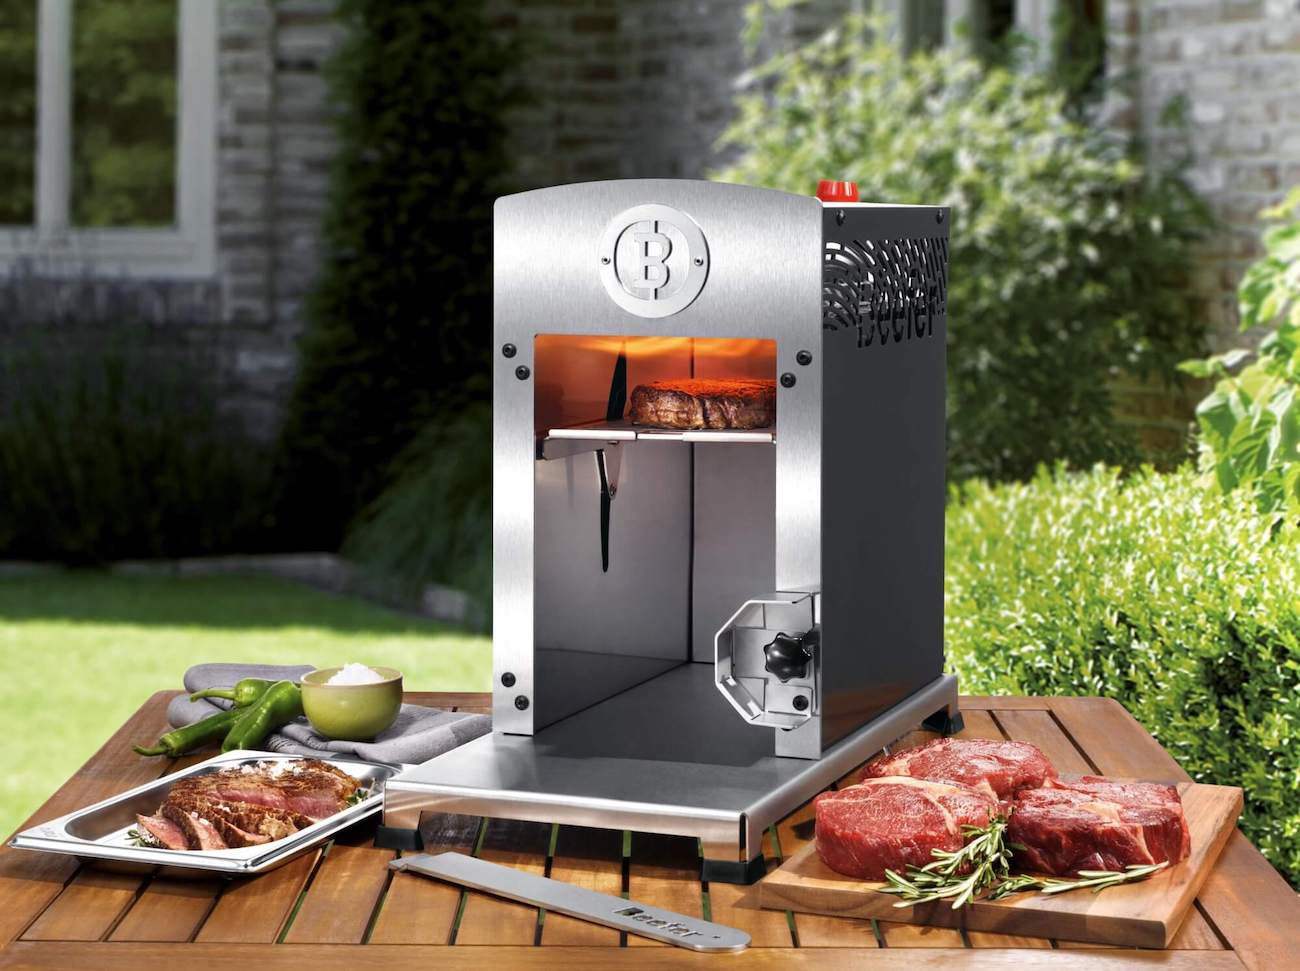 Beefer-High-Performance-Beef-Grill-02.jpg